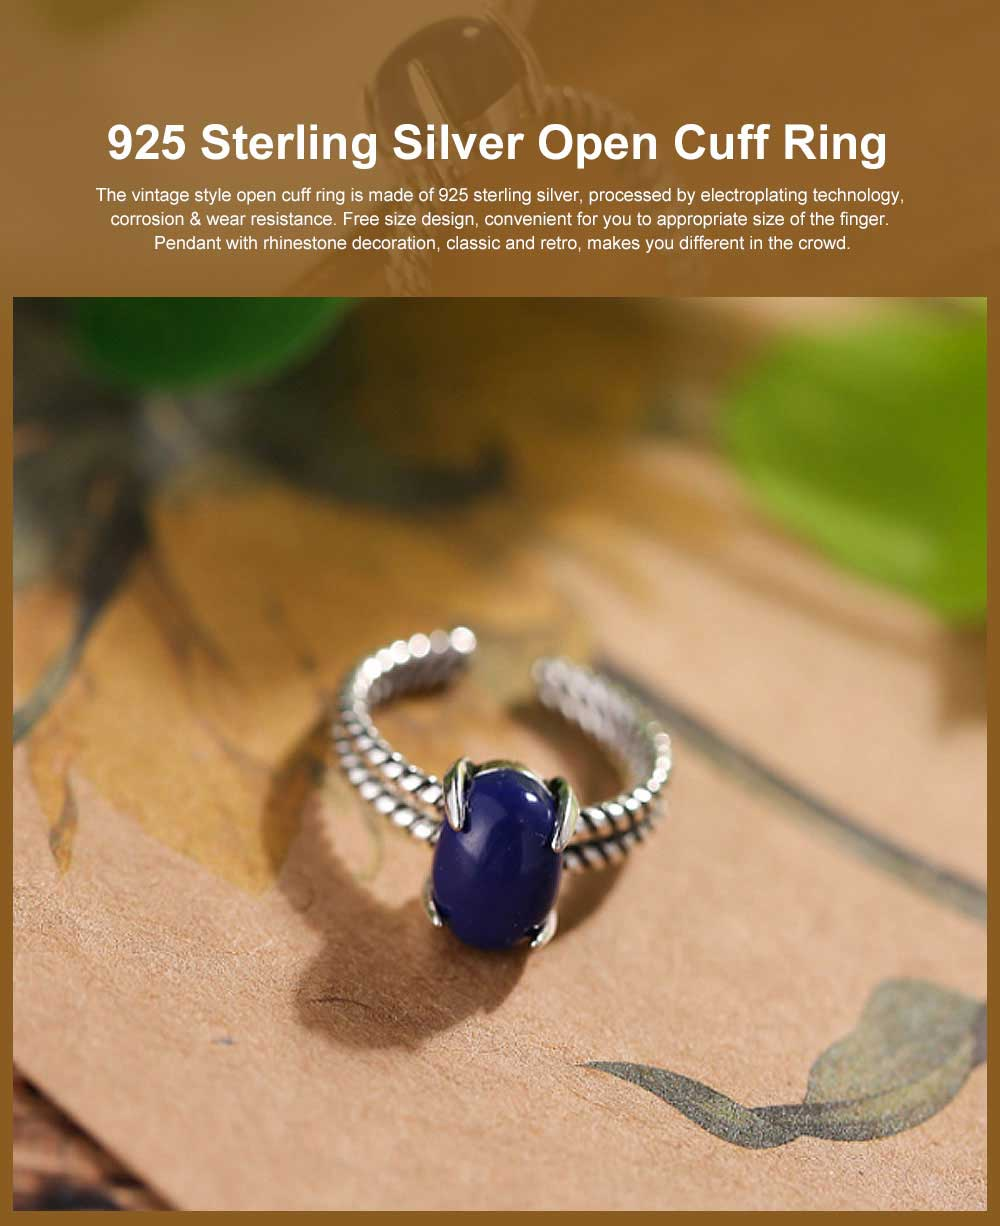 925 Sterling Silver Open Cuff Ring, Adjustable Ring with Blue Crystal for Men & Ladies Archaize Elegant Jewelry Rings 0